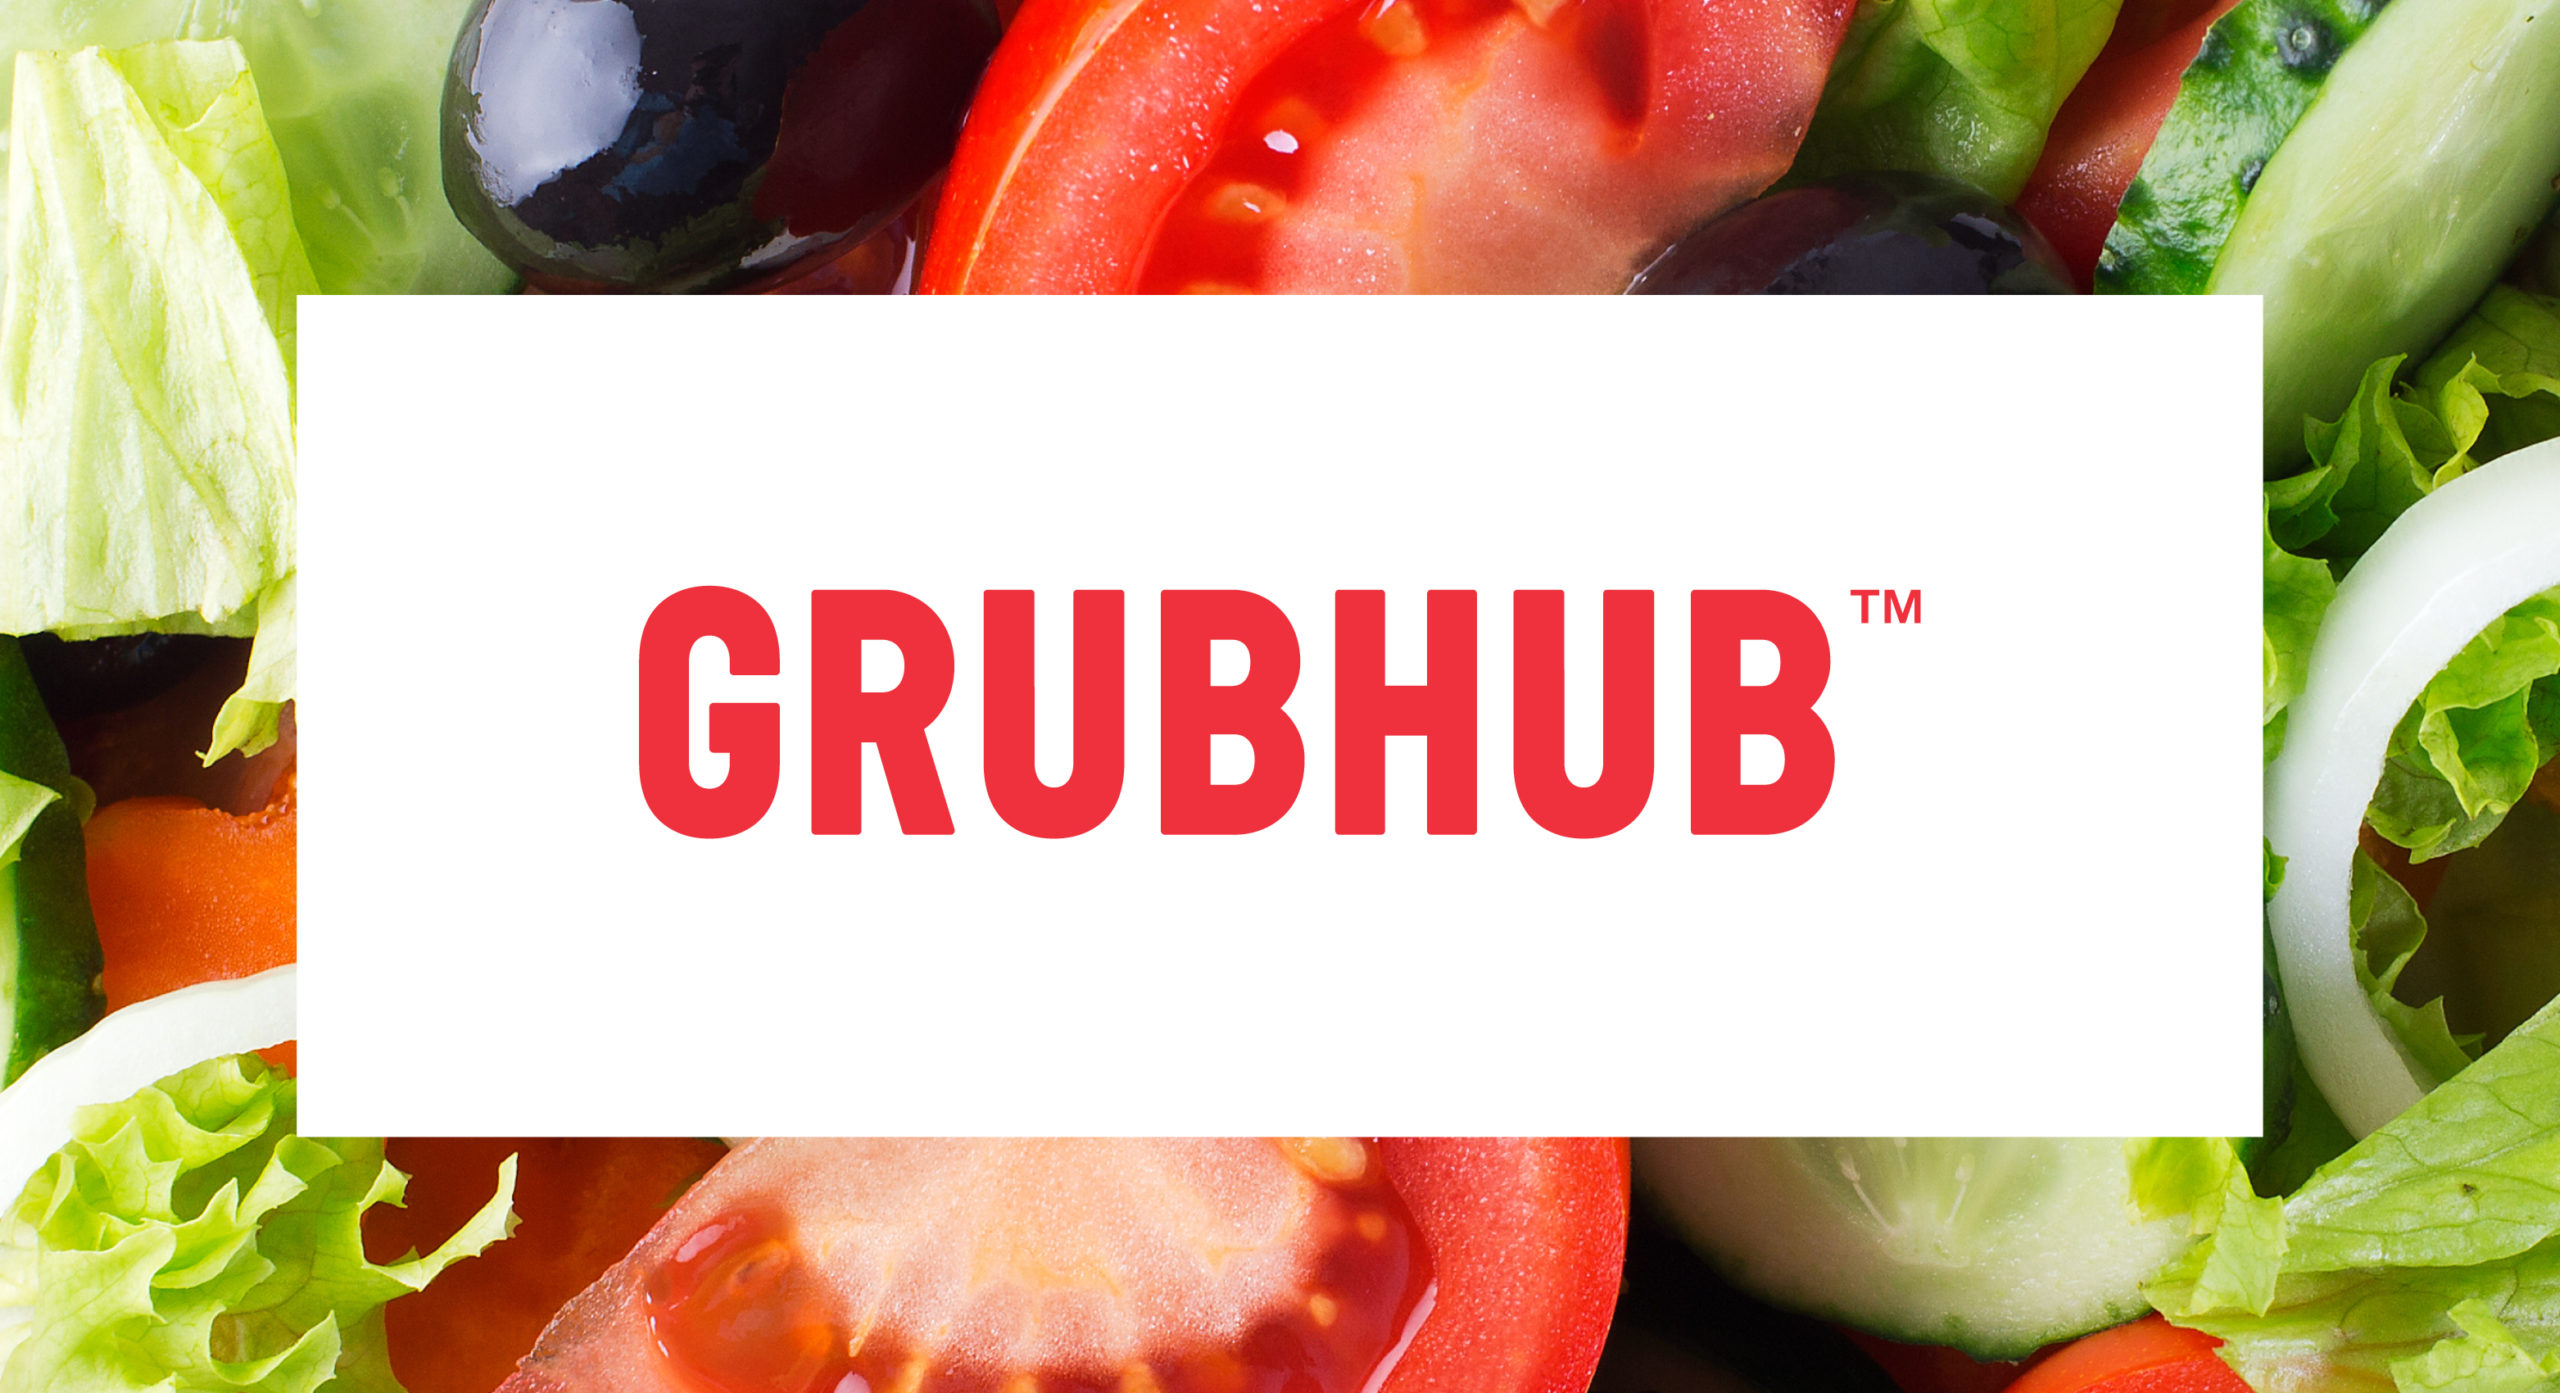 Free $10 Off $15 GrubHub Restaurant Delivery Coupon